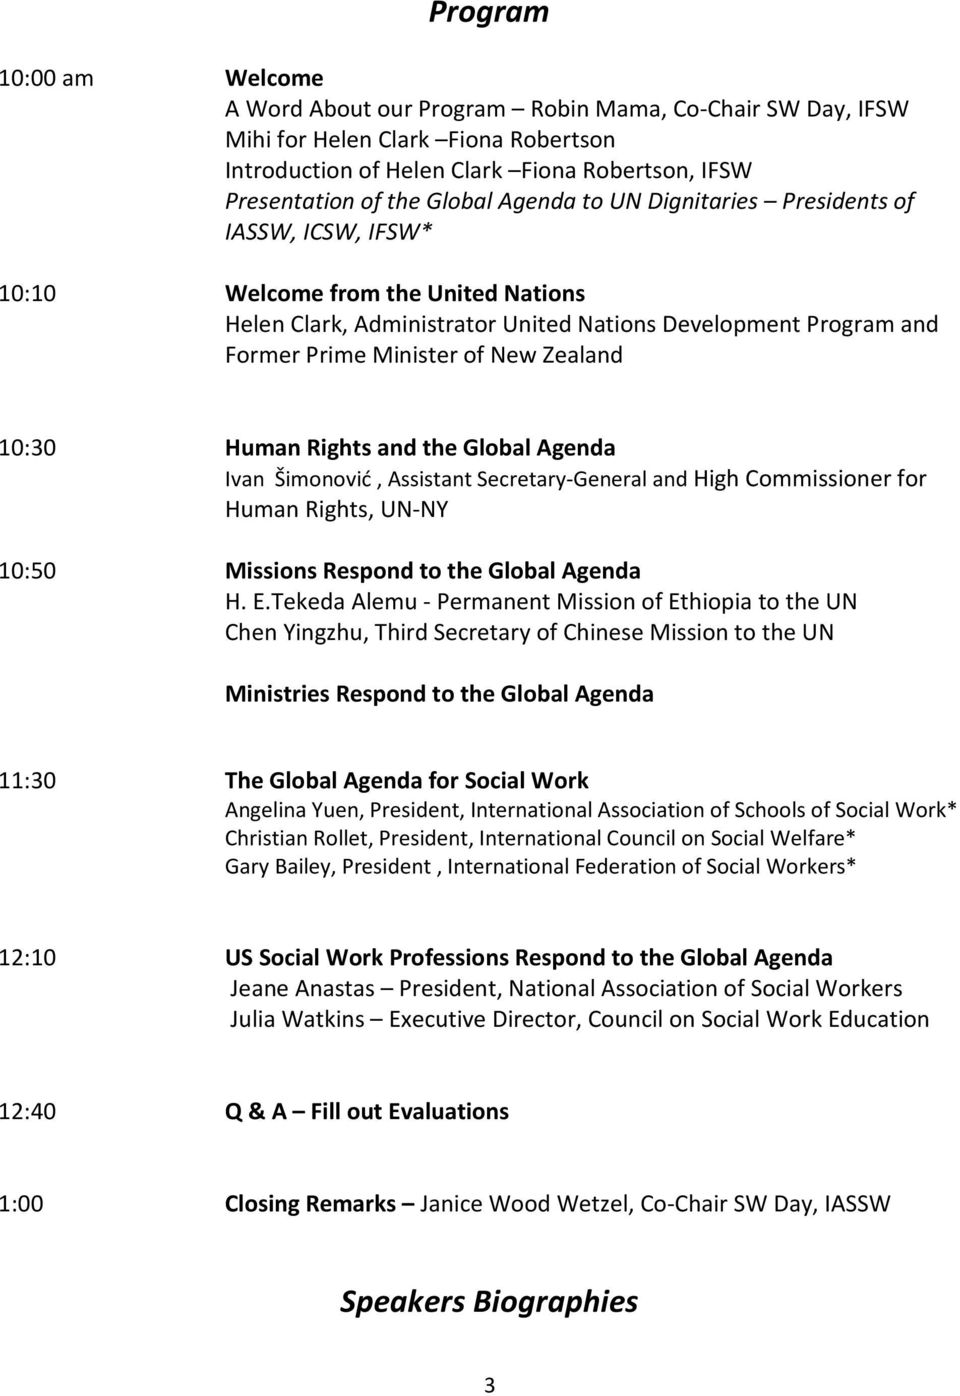 10:30 Human Rights and the Global Agenda Ivan Šimonović, Assistant Secretary-General and High Commissioner for Human Rights, UN-NY 10:50 Missions Respond to the Global Agenda H. E.